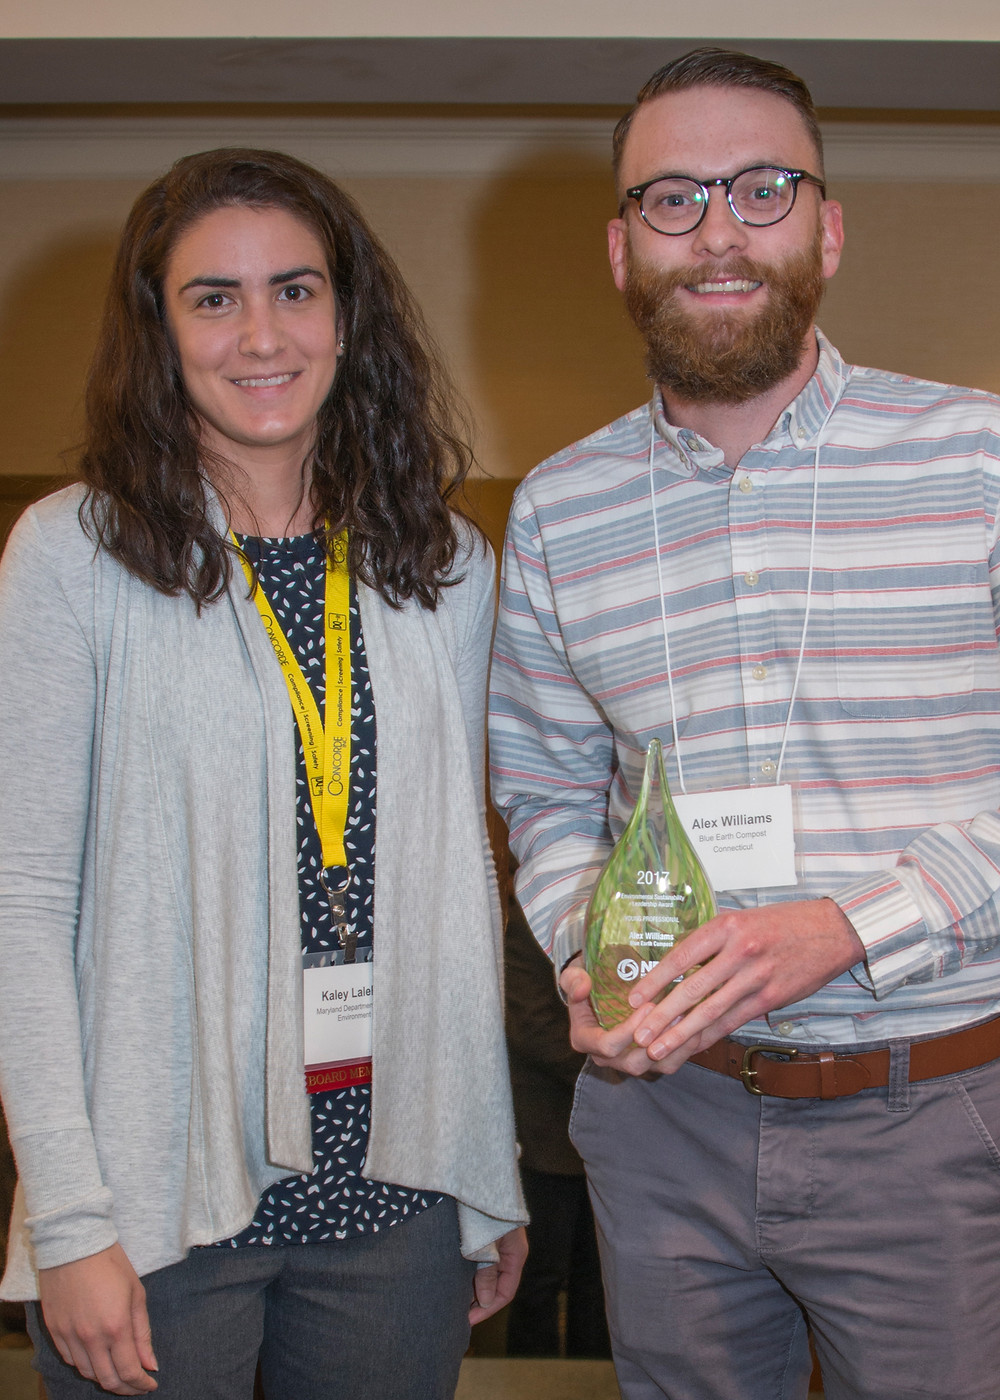 Alex accepting the award from Kaley Laleker from NERC